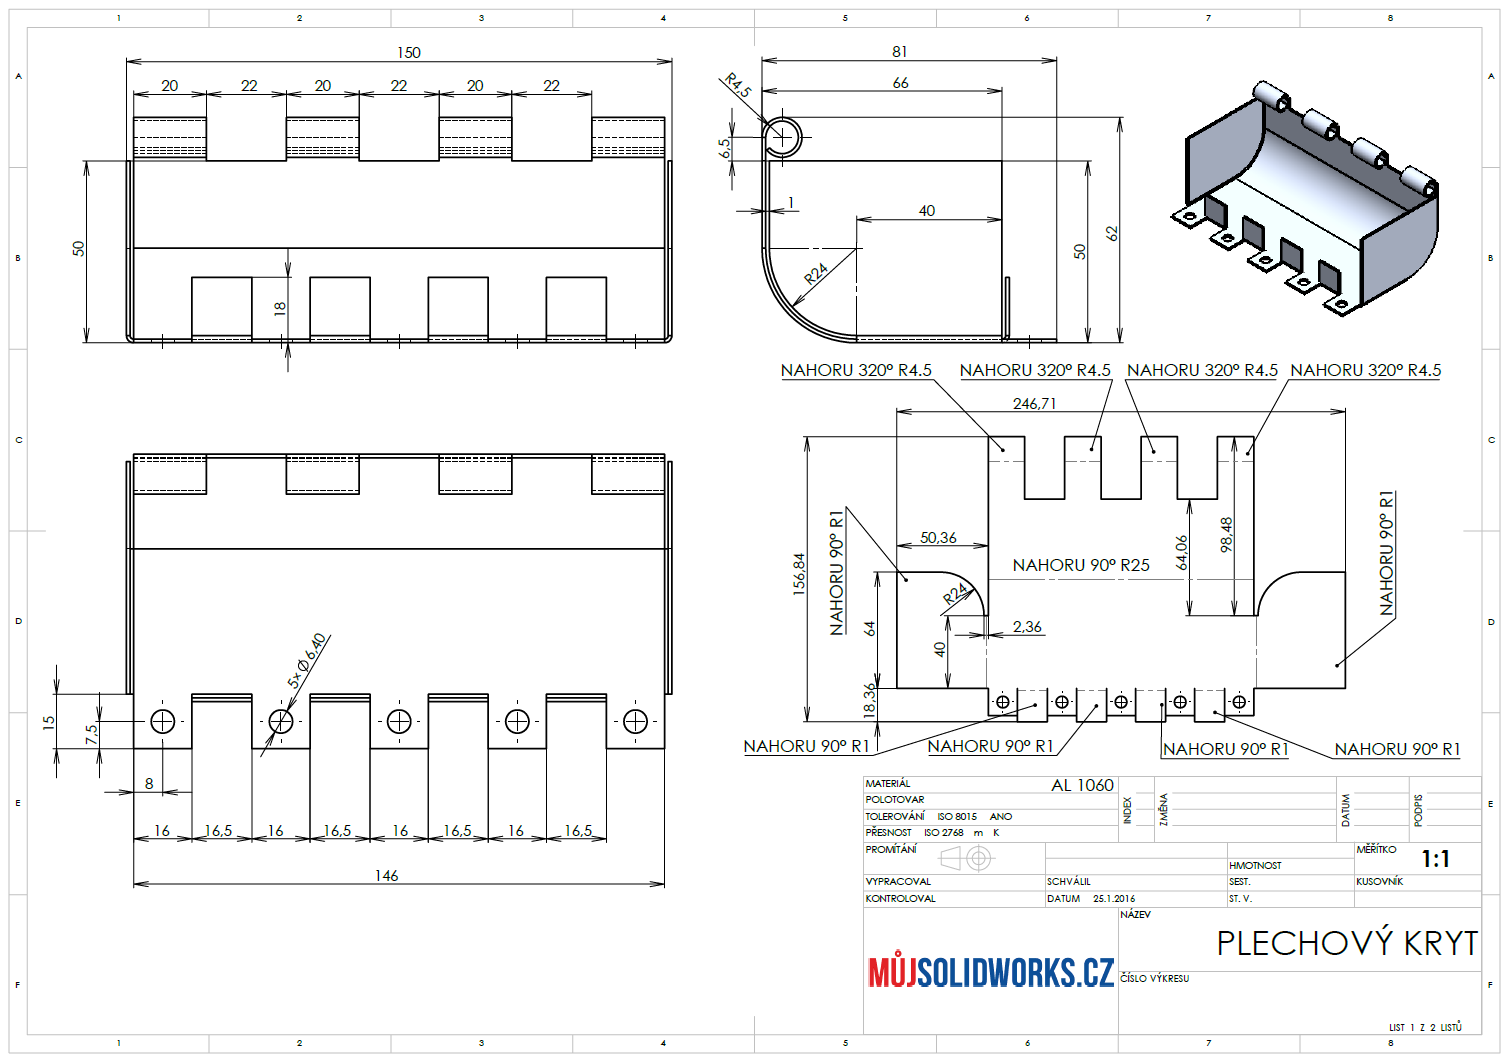 1-SolidWorks-plechovy-dil-Sheet-metal-navod-postup-vykres-1